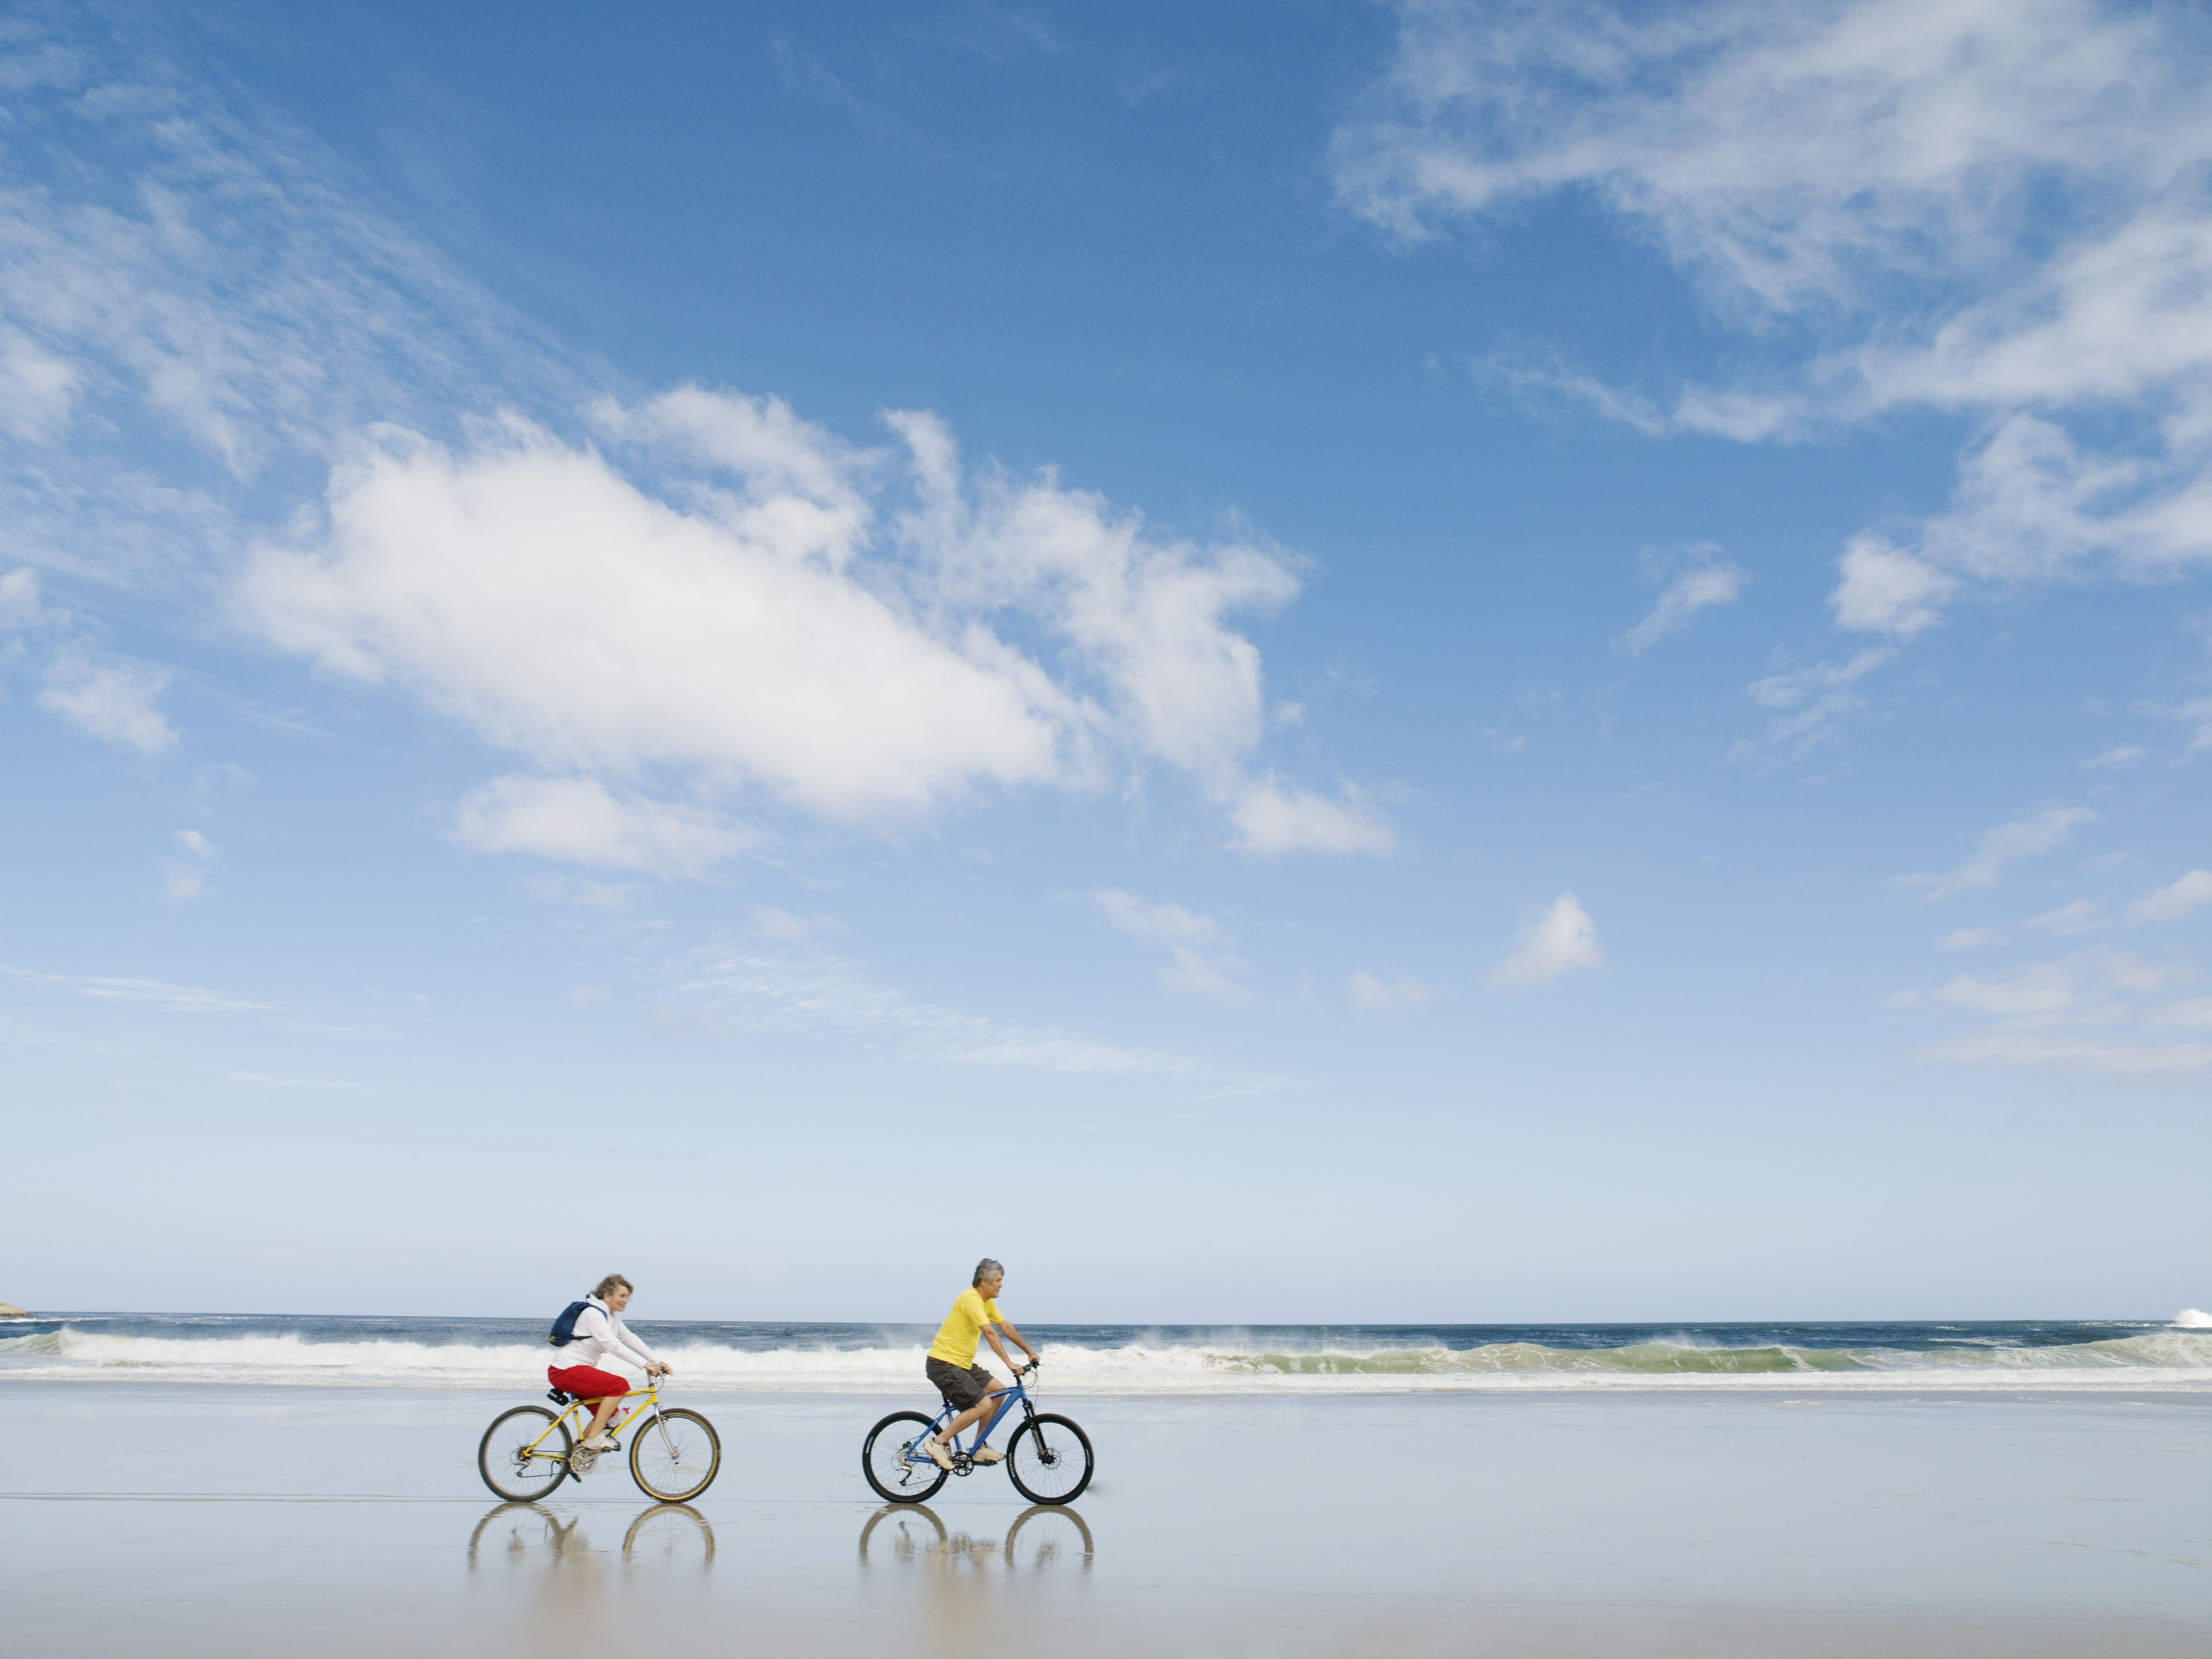 Mature couple riding bicycles on beach, side view